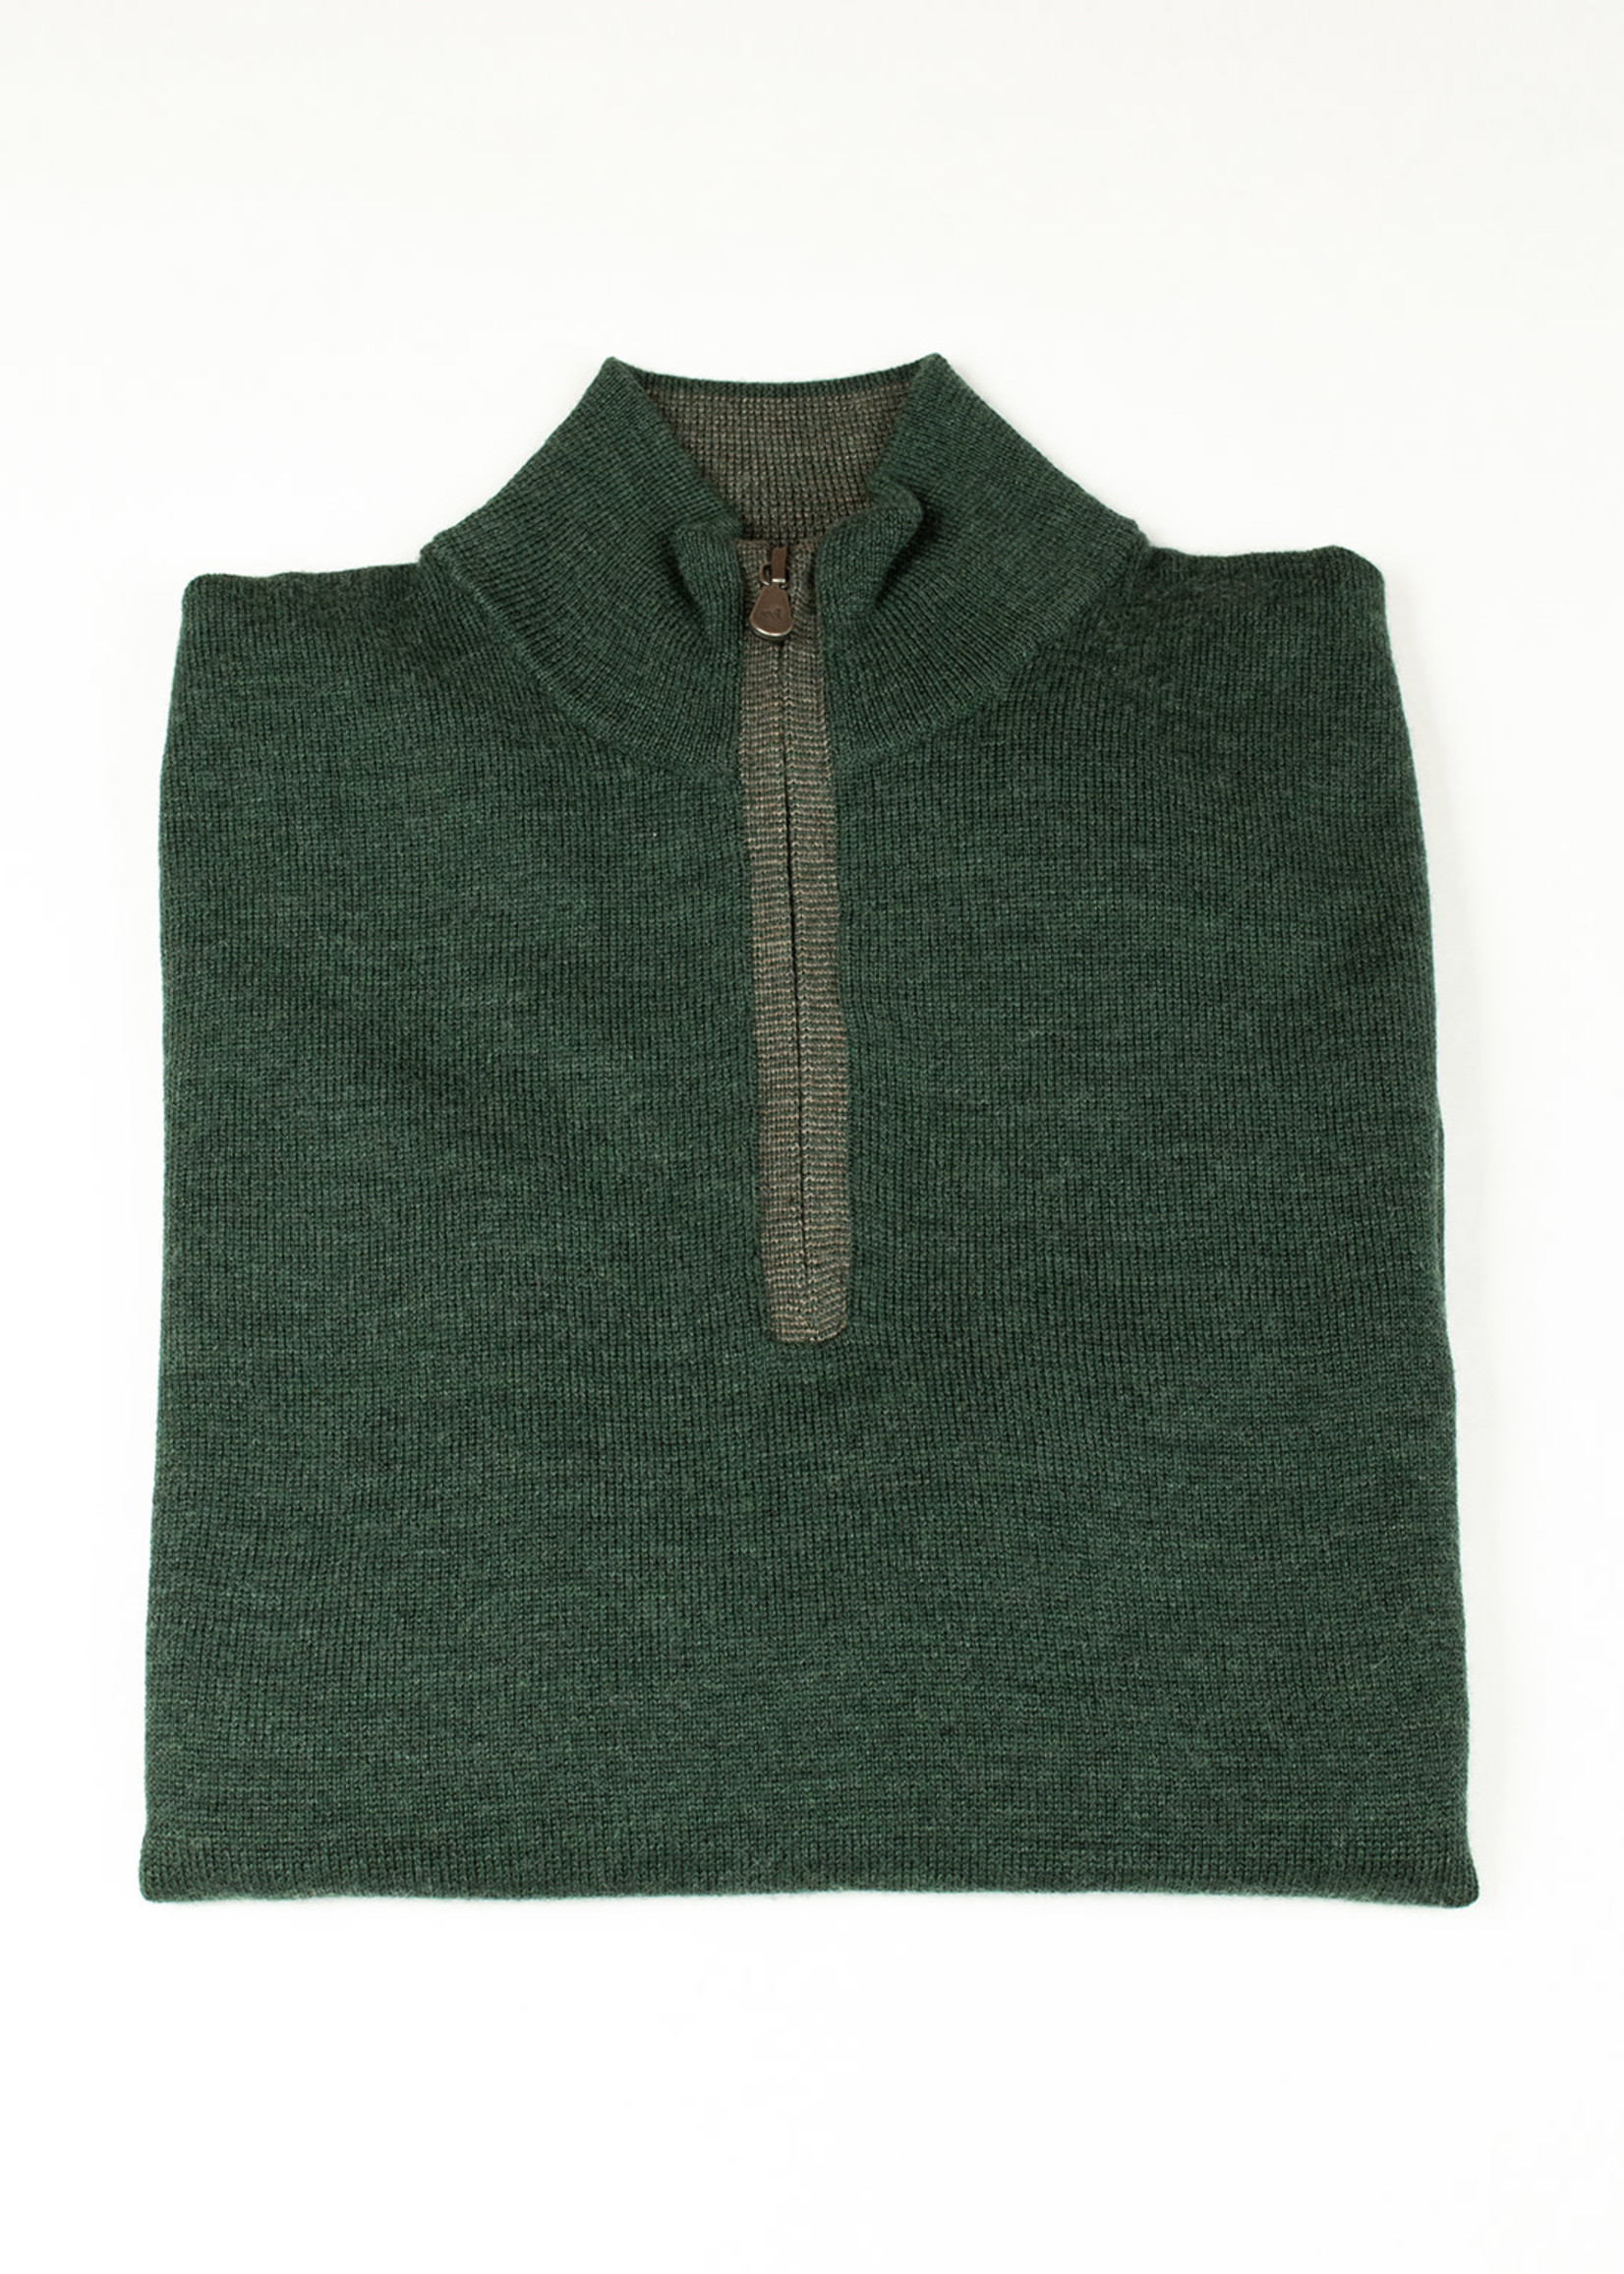 Raffi Forest Merino Wool 1/4 Zip by Raffi